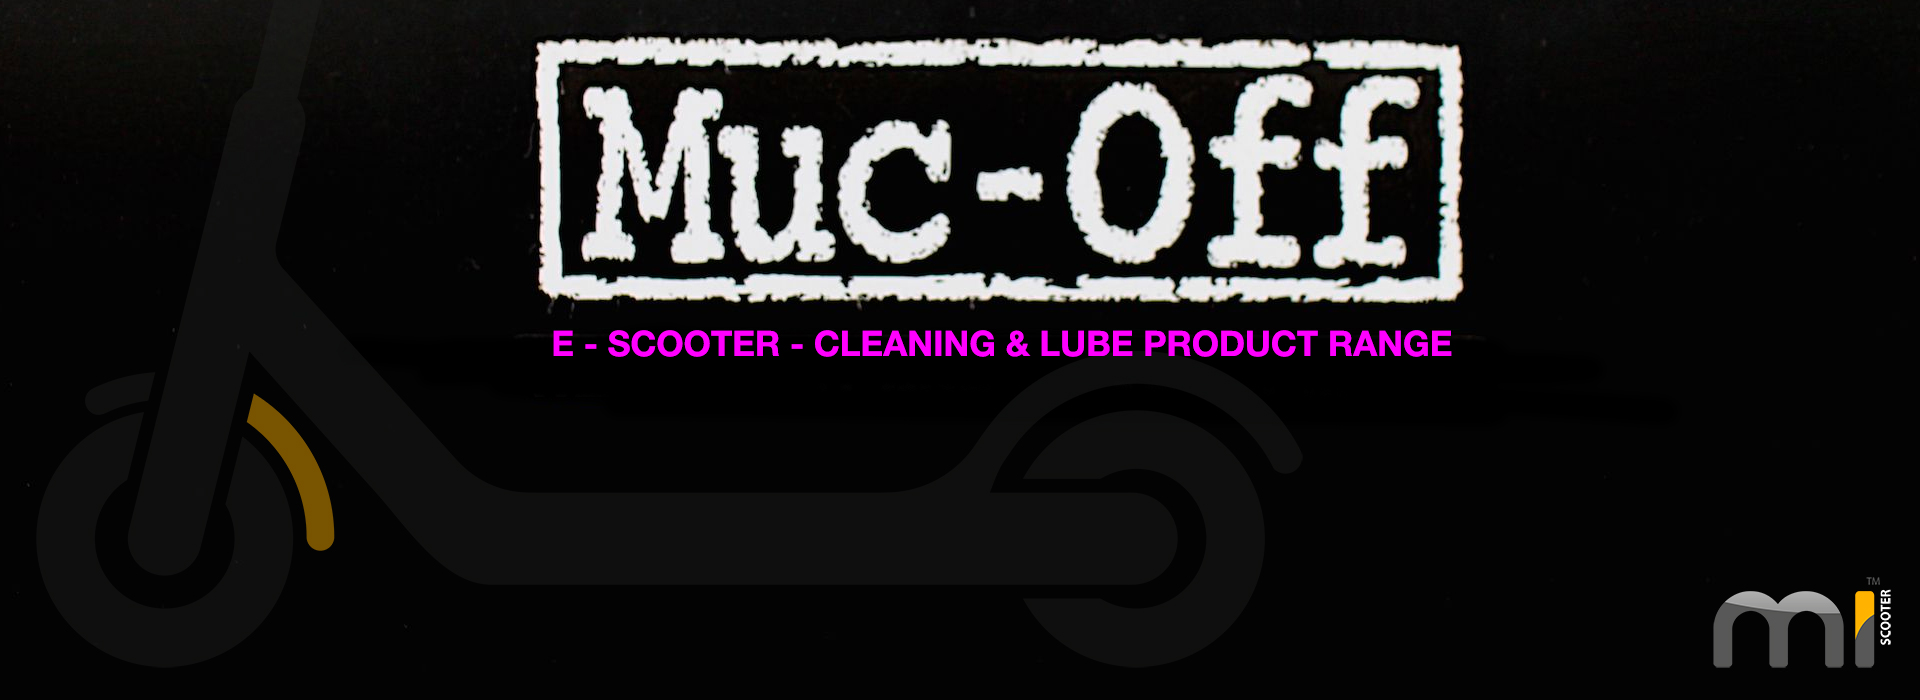 Muc-Off - E Scooter Cleaning & Lube Products - Mi-Scooter